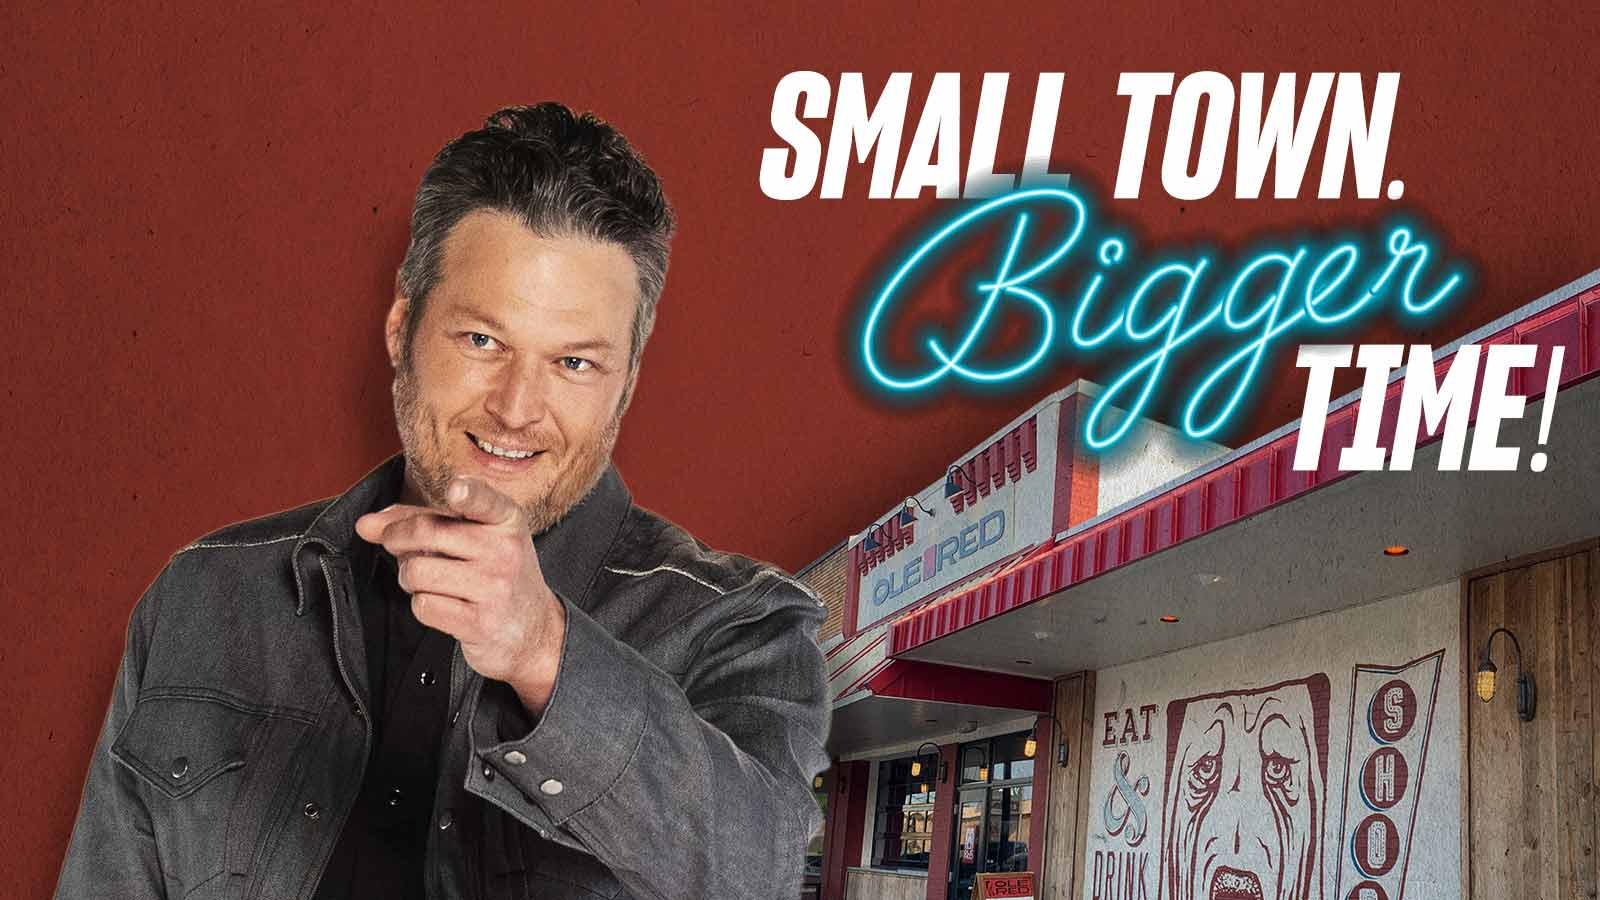 Small Town. Bigger Time!